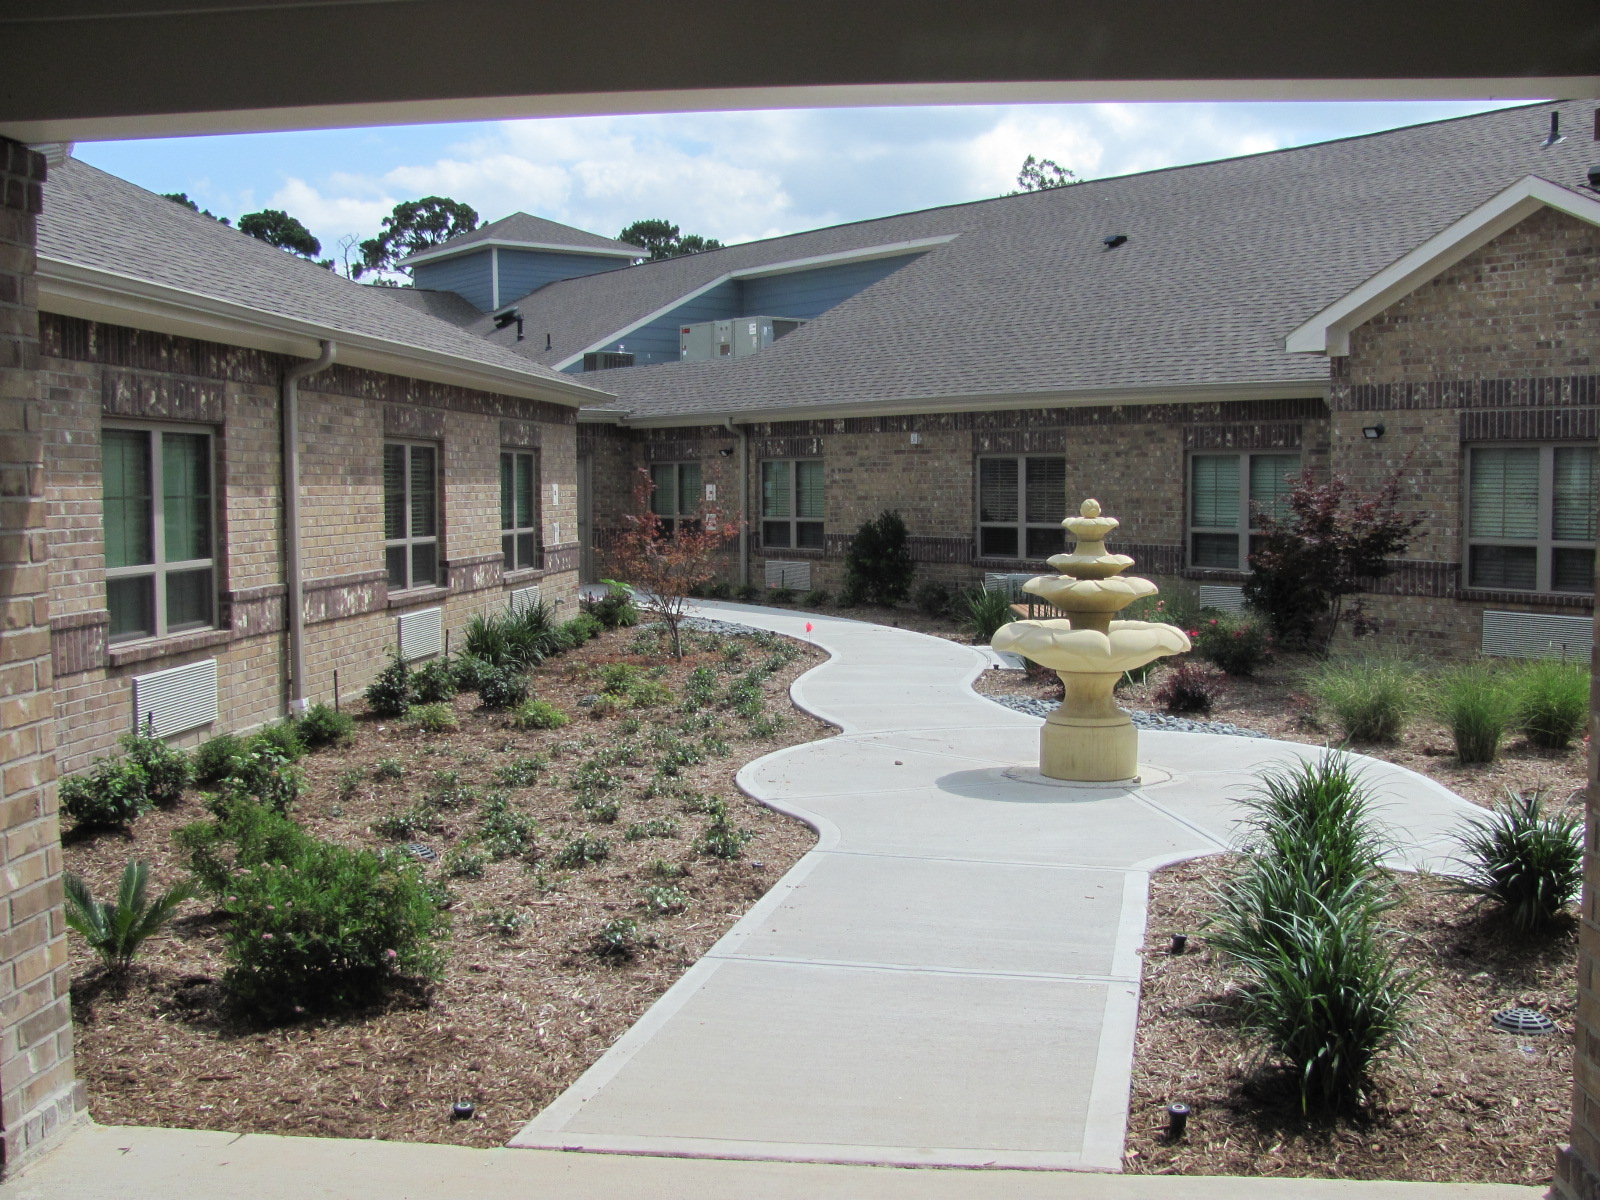 Highland Park Nursing Care & Rehab_Courtyard-1.JPG